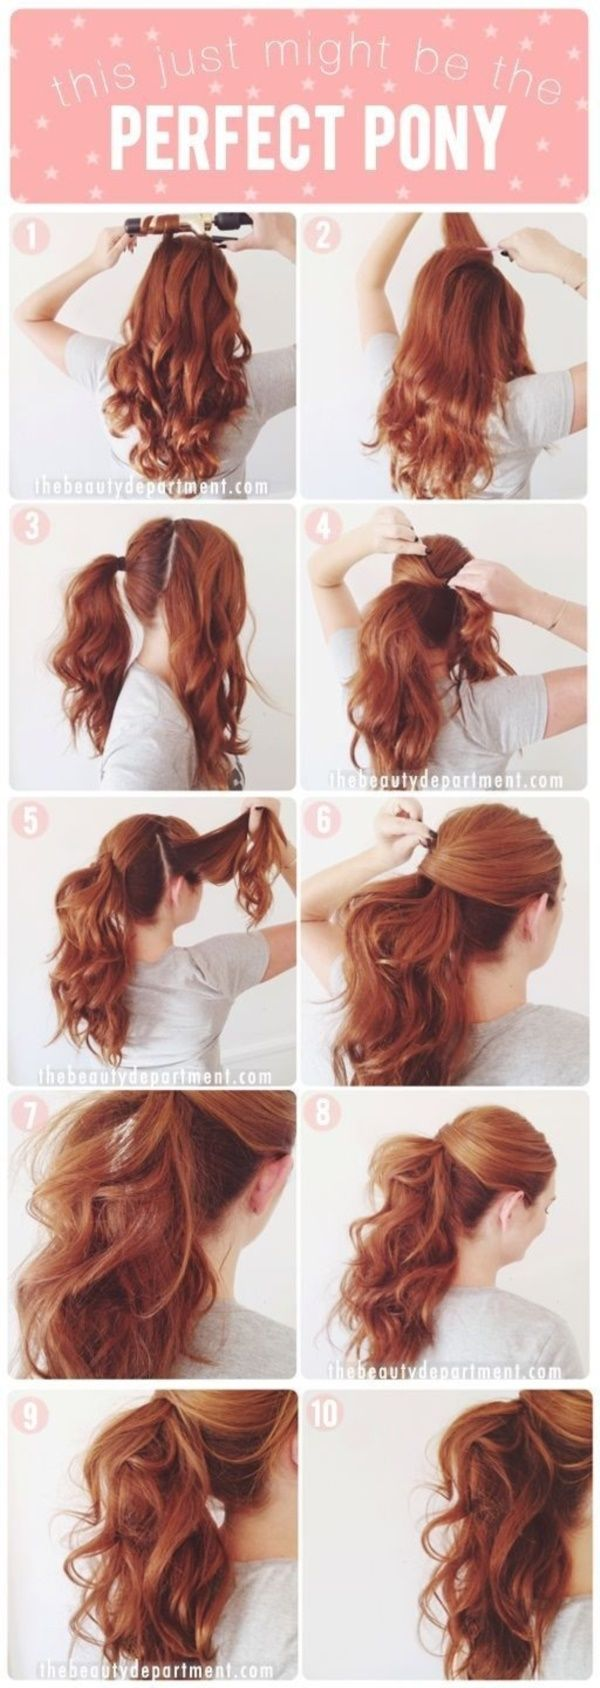 very easy hairstyles to do in just minutes or less make upu